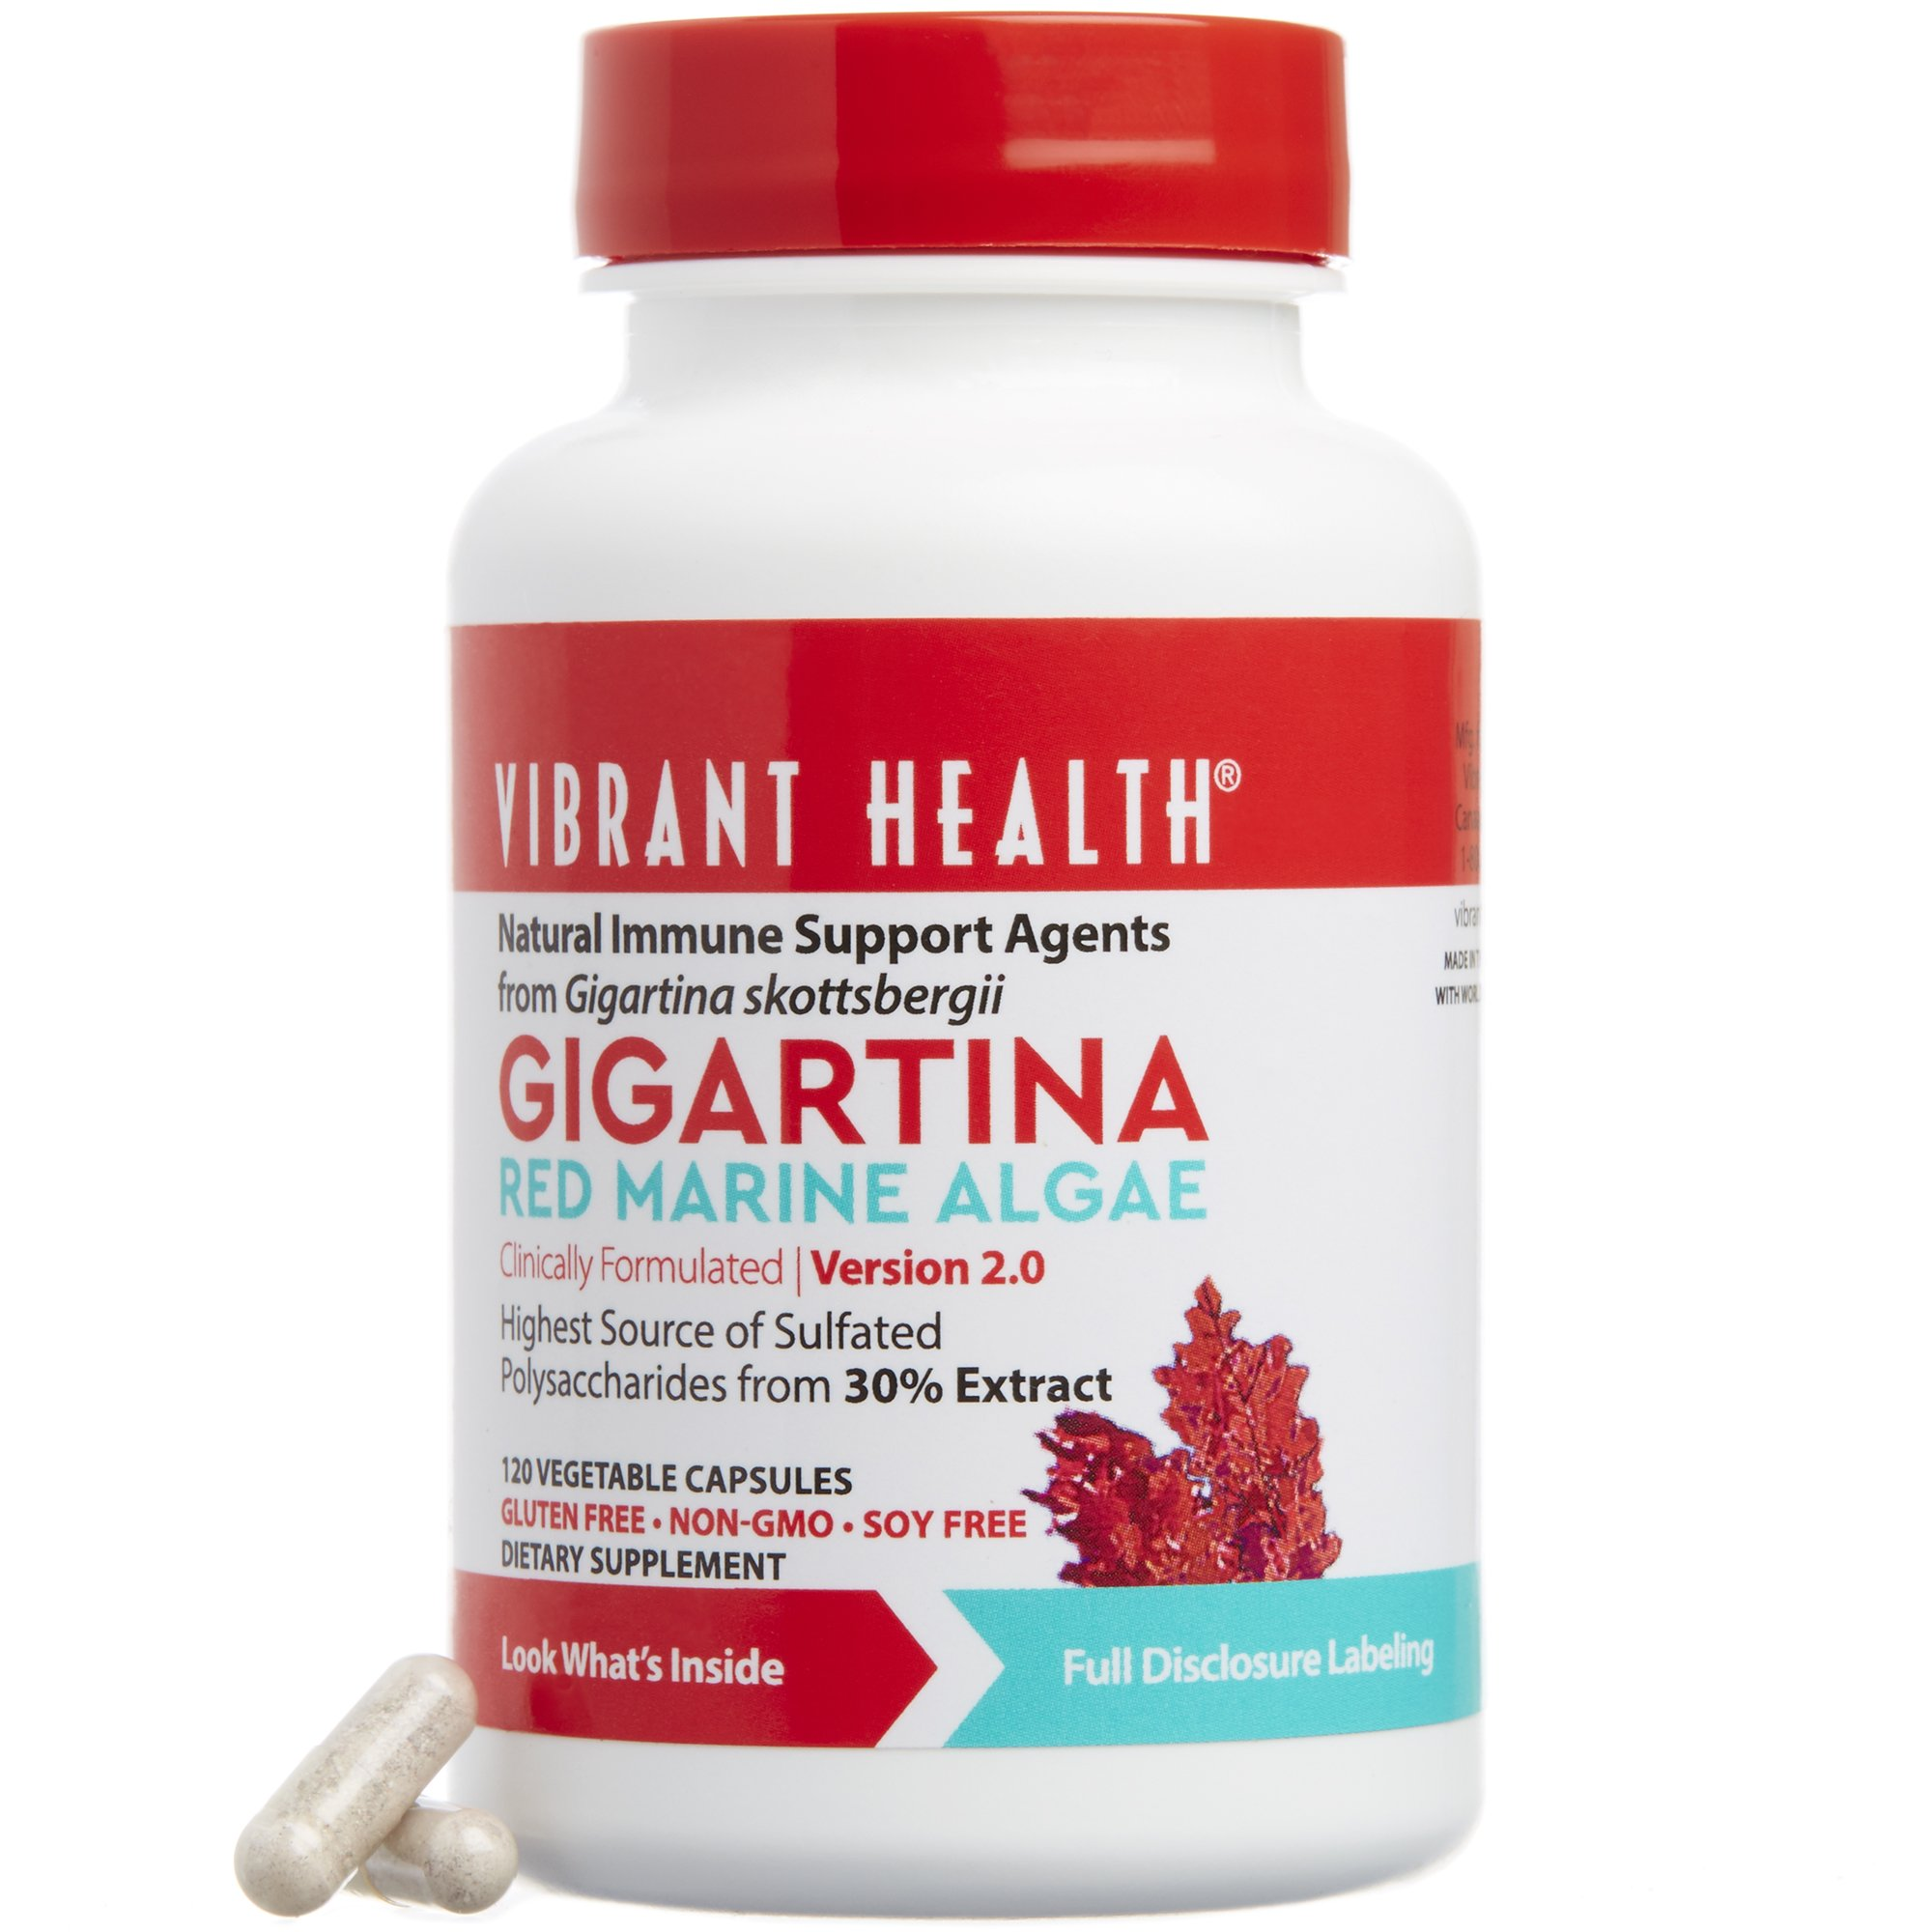 Vibrant Health - Gigartina Red Marine Algae, Natural Support for Immune Function and Healing, Gluten Free, Dairy Free, Non-GMO, Vegetarian, 120 Count (FFP)